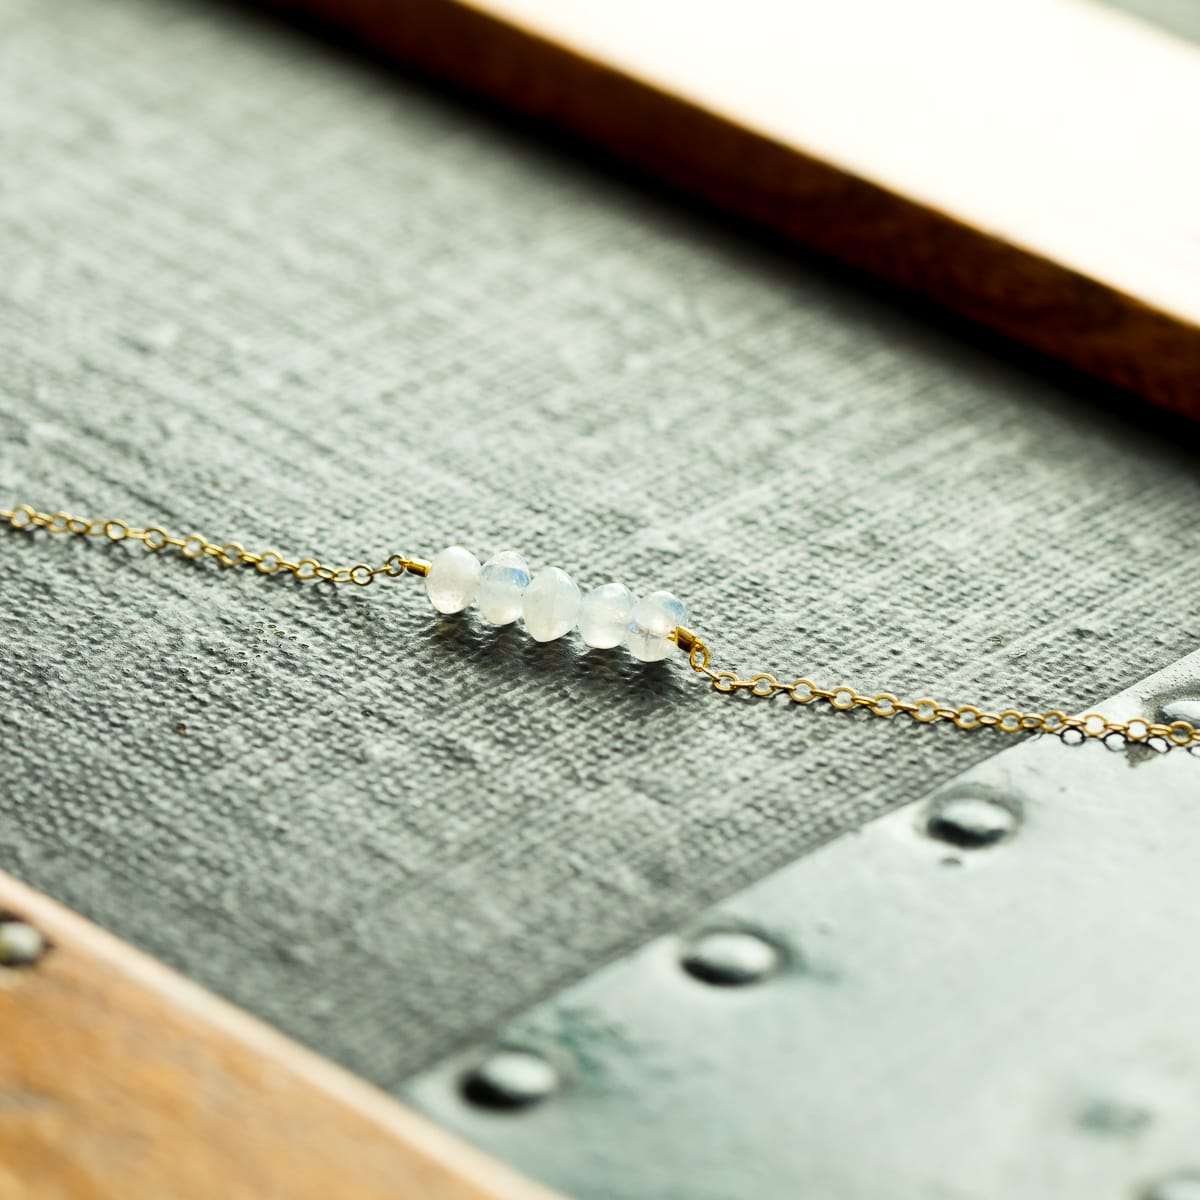 Moonstone Necklace, Rainbow Moonstone, Moonstone Row Necklace, Dainty Necklace, Minimal Necklace, Moonstone Bar Necklace, Gemstone Necklace, Liz.Beth Jewelry Co.